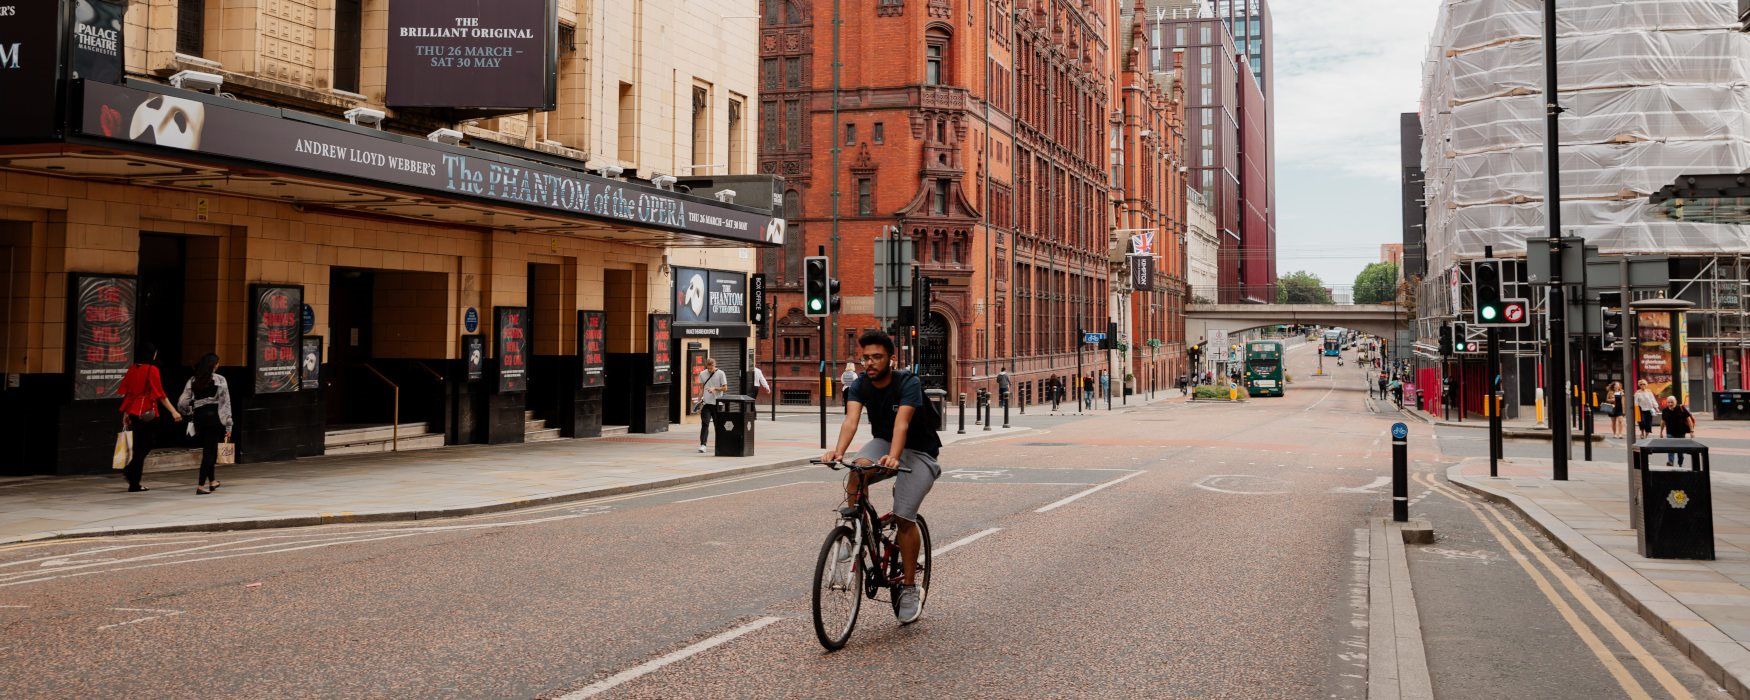 Male riding a bike on Oxford Street, Manchester